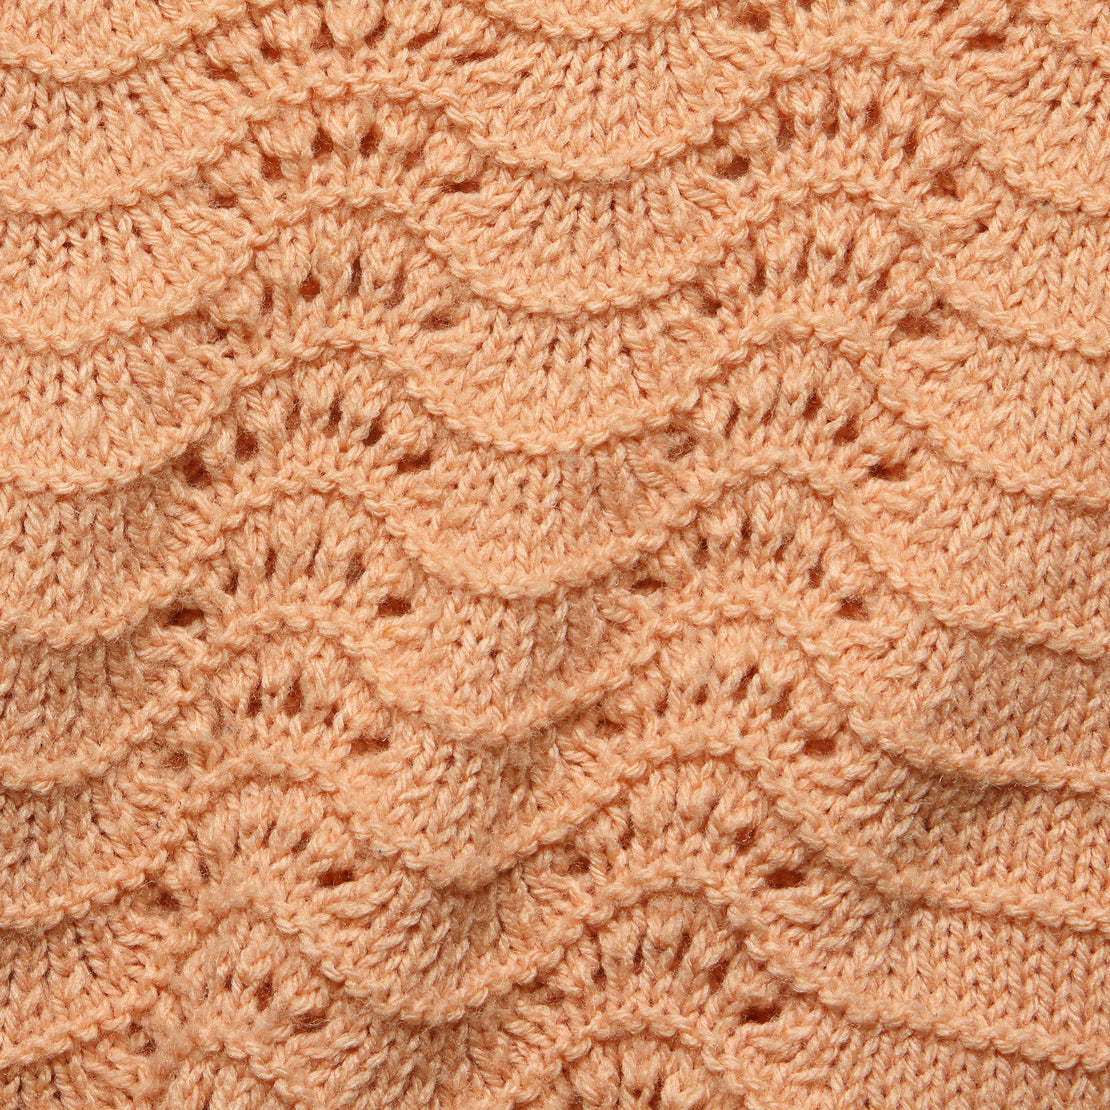 Crochet Knit Cropped Sweater - Peach